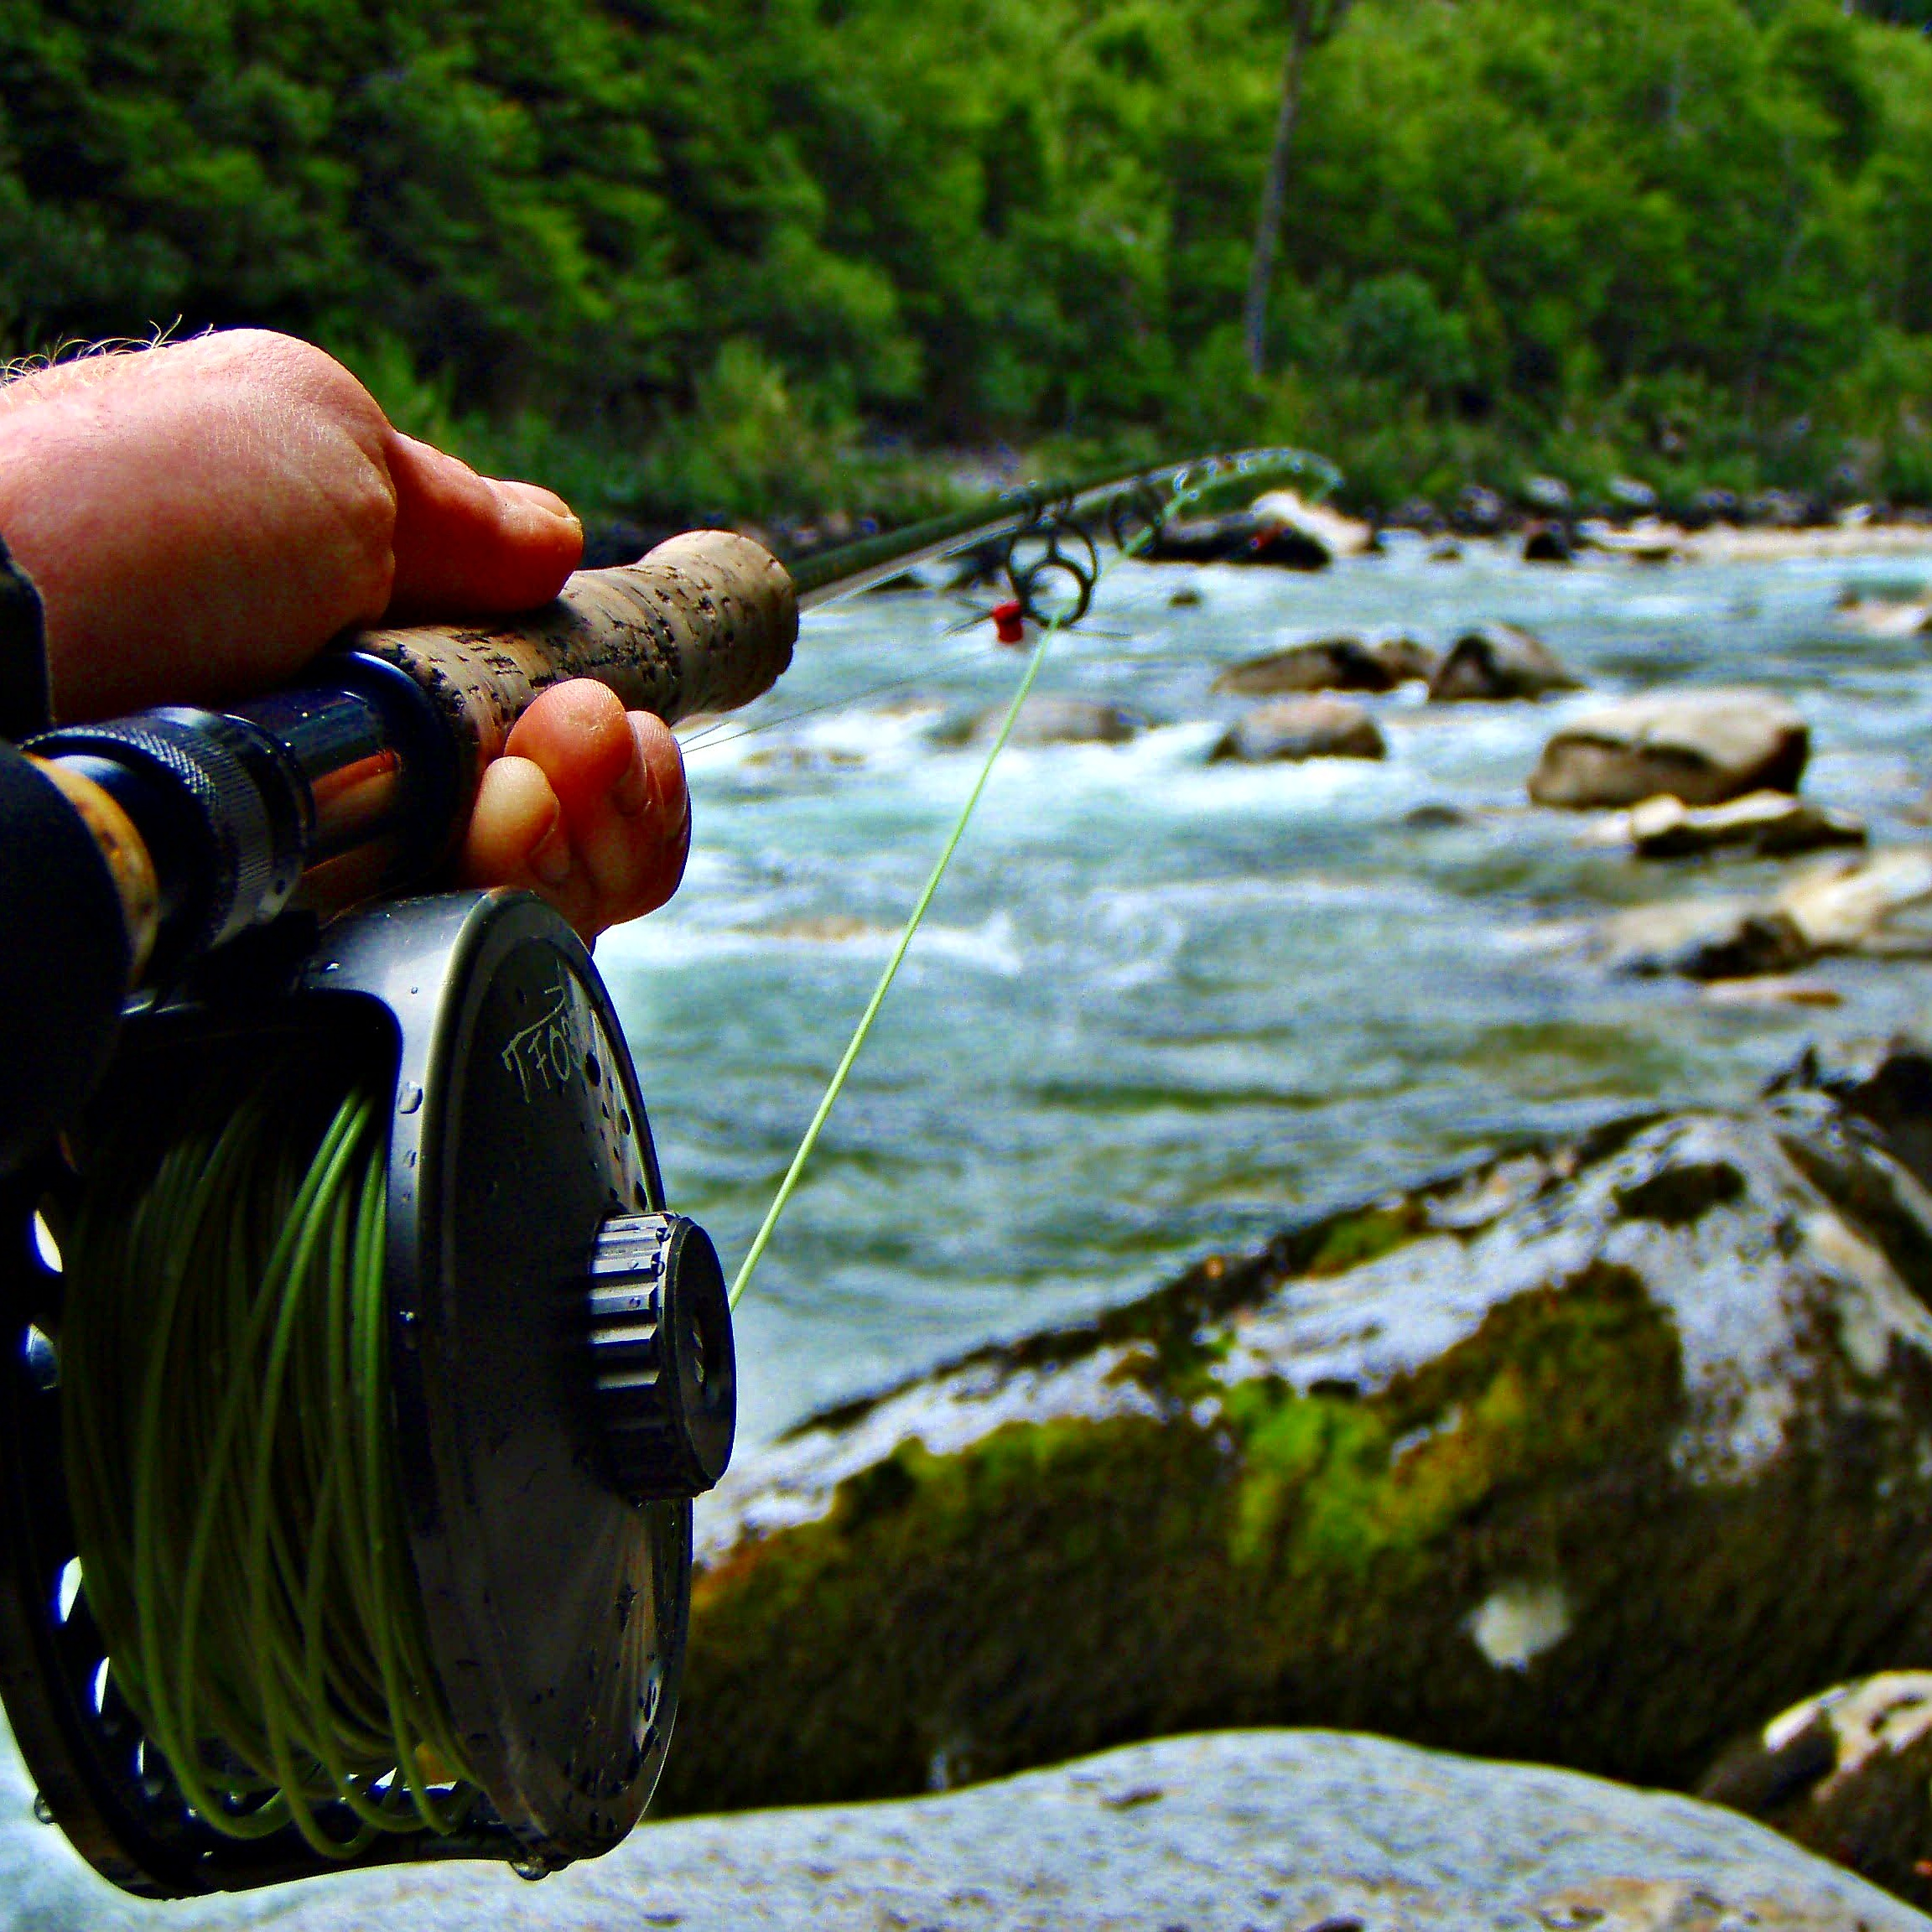 Patagonia Fly Fishing Guide |  Fly Fishing Chile Guide | Patagonia Trout Adventures |